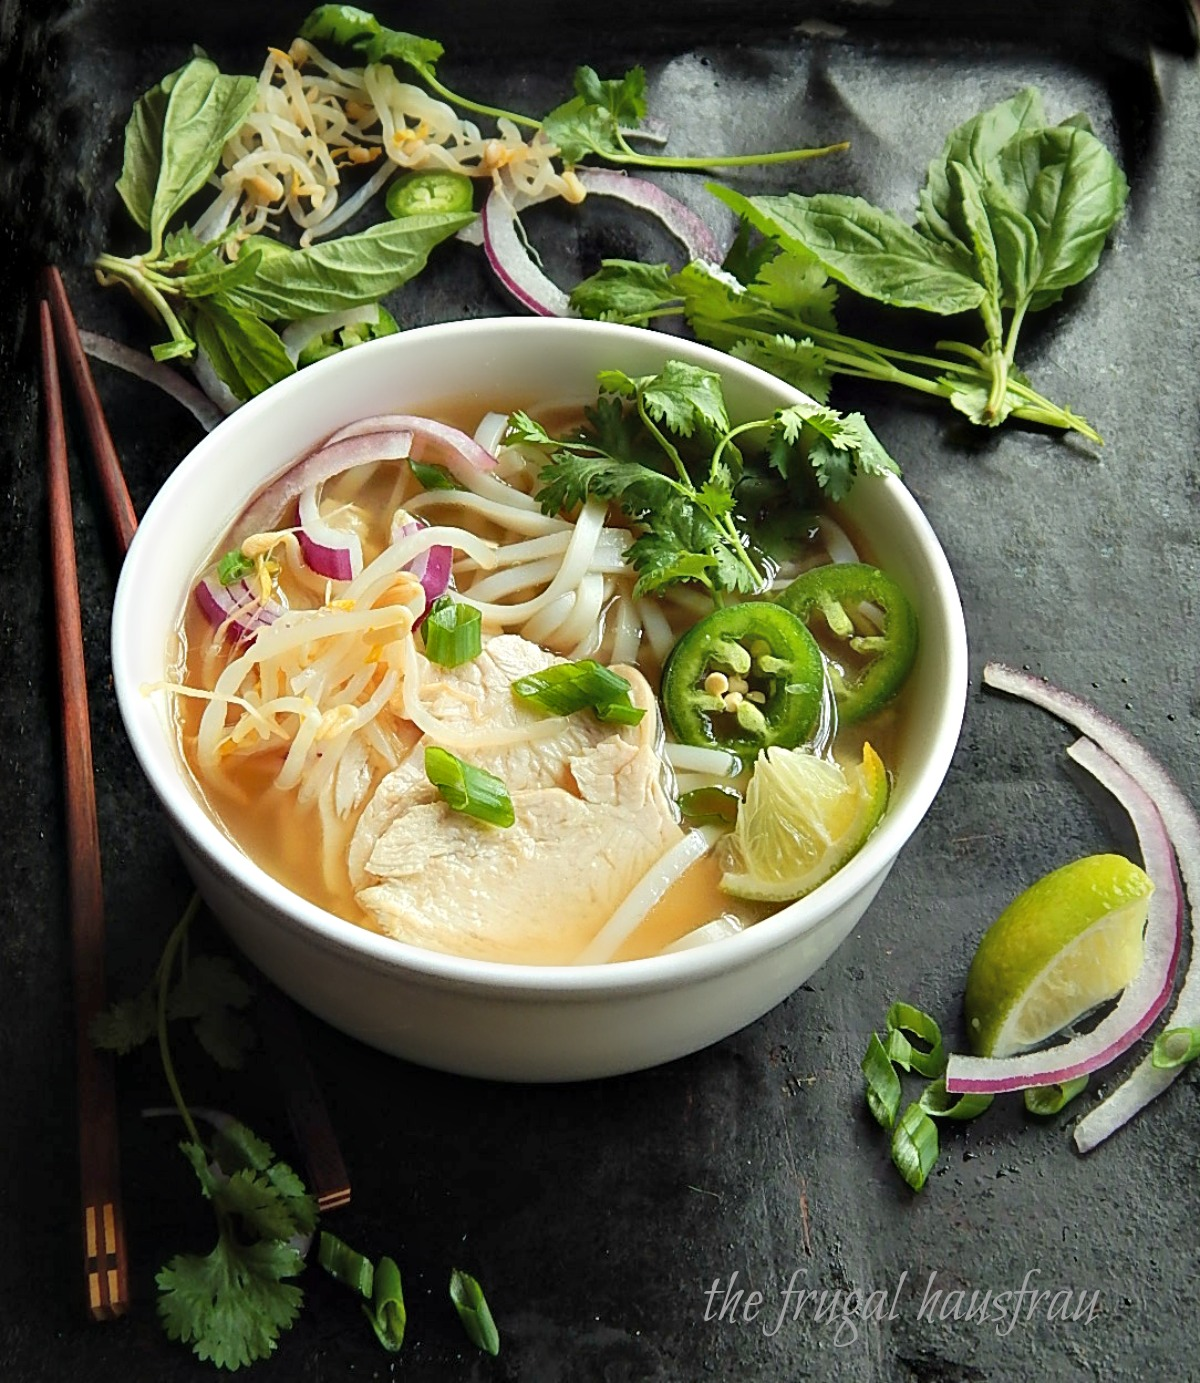 Shortcut Pho Ga Vietnamese Chicken Noodle Soup Or Pho Ga Tay Instant Pot Or Stove Top Frugal Hausfrau